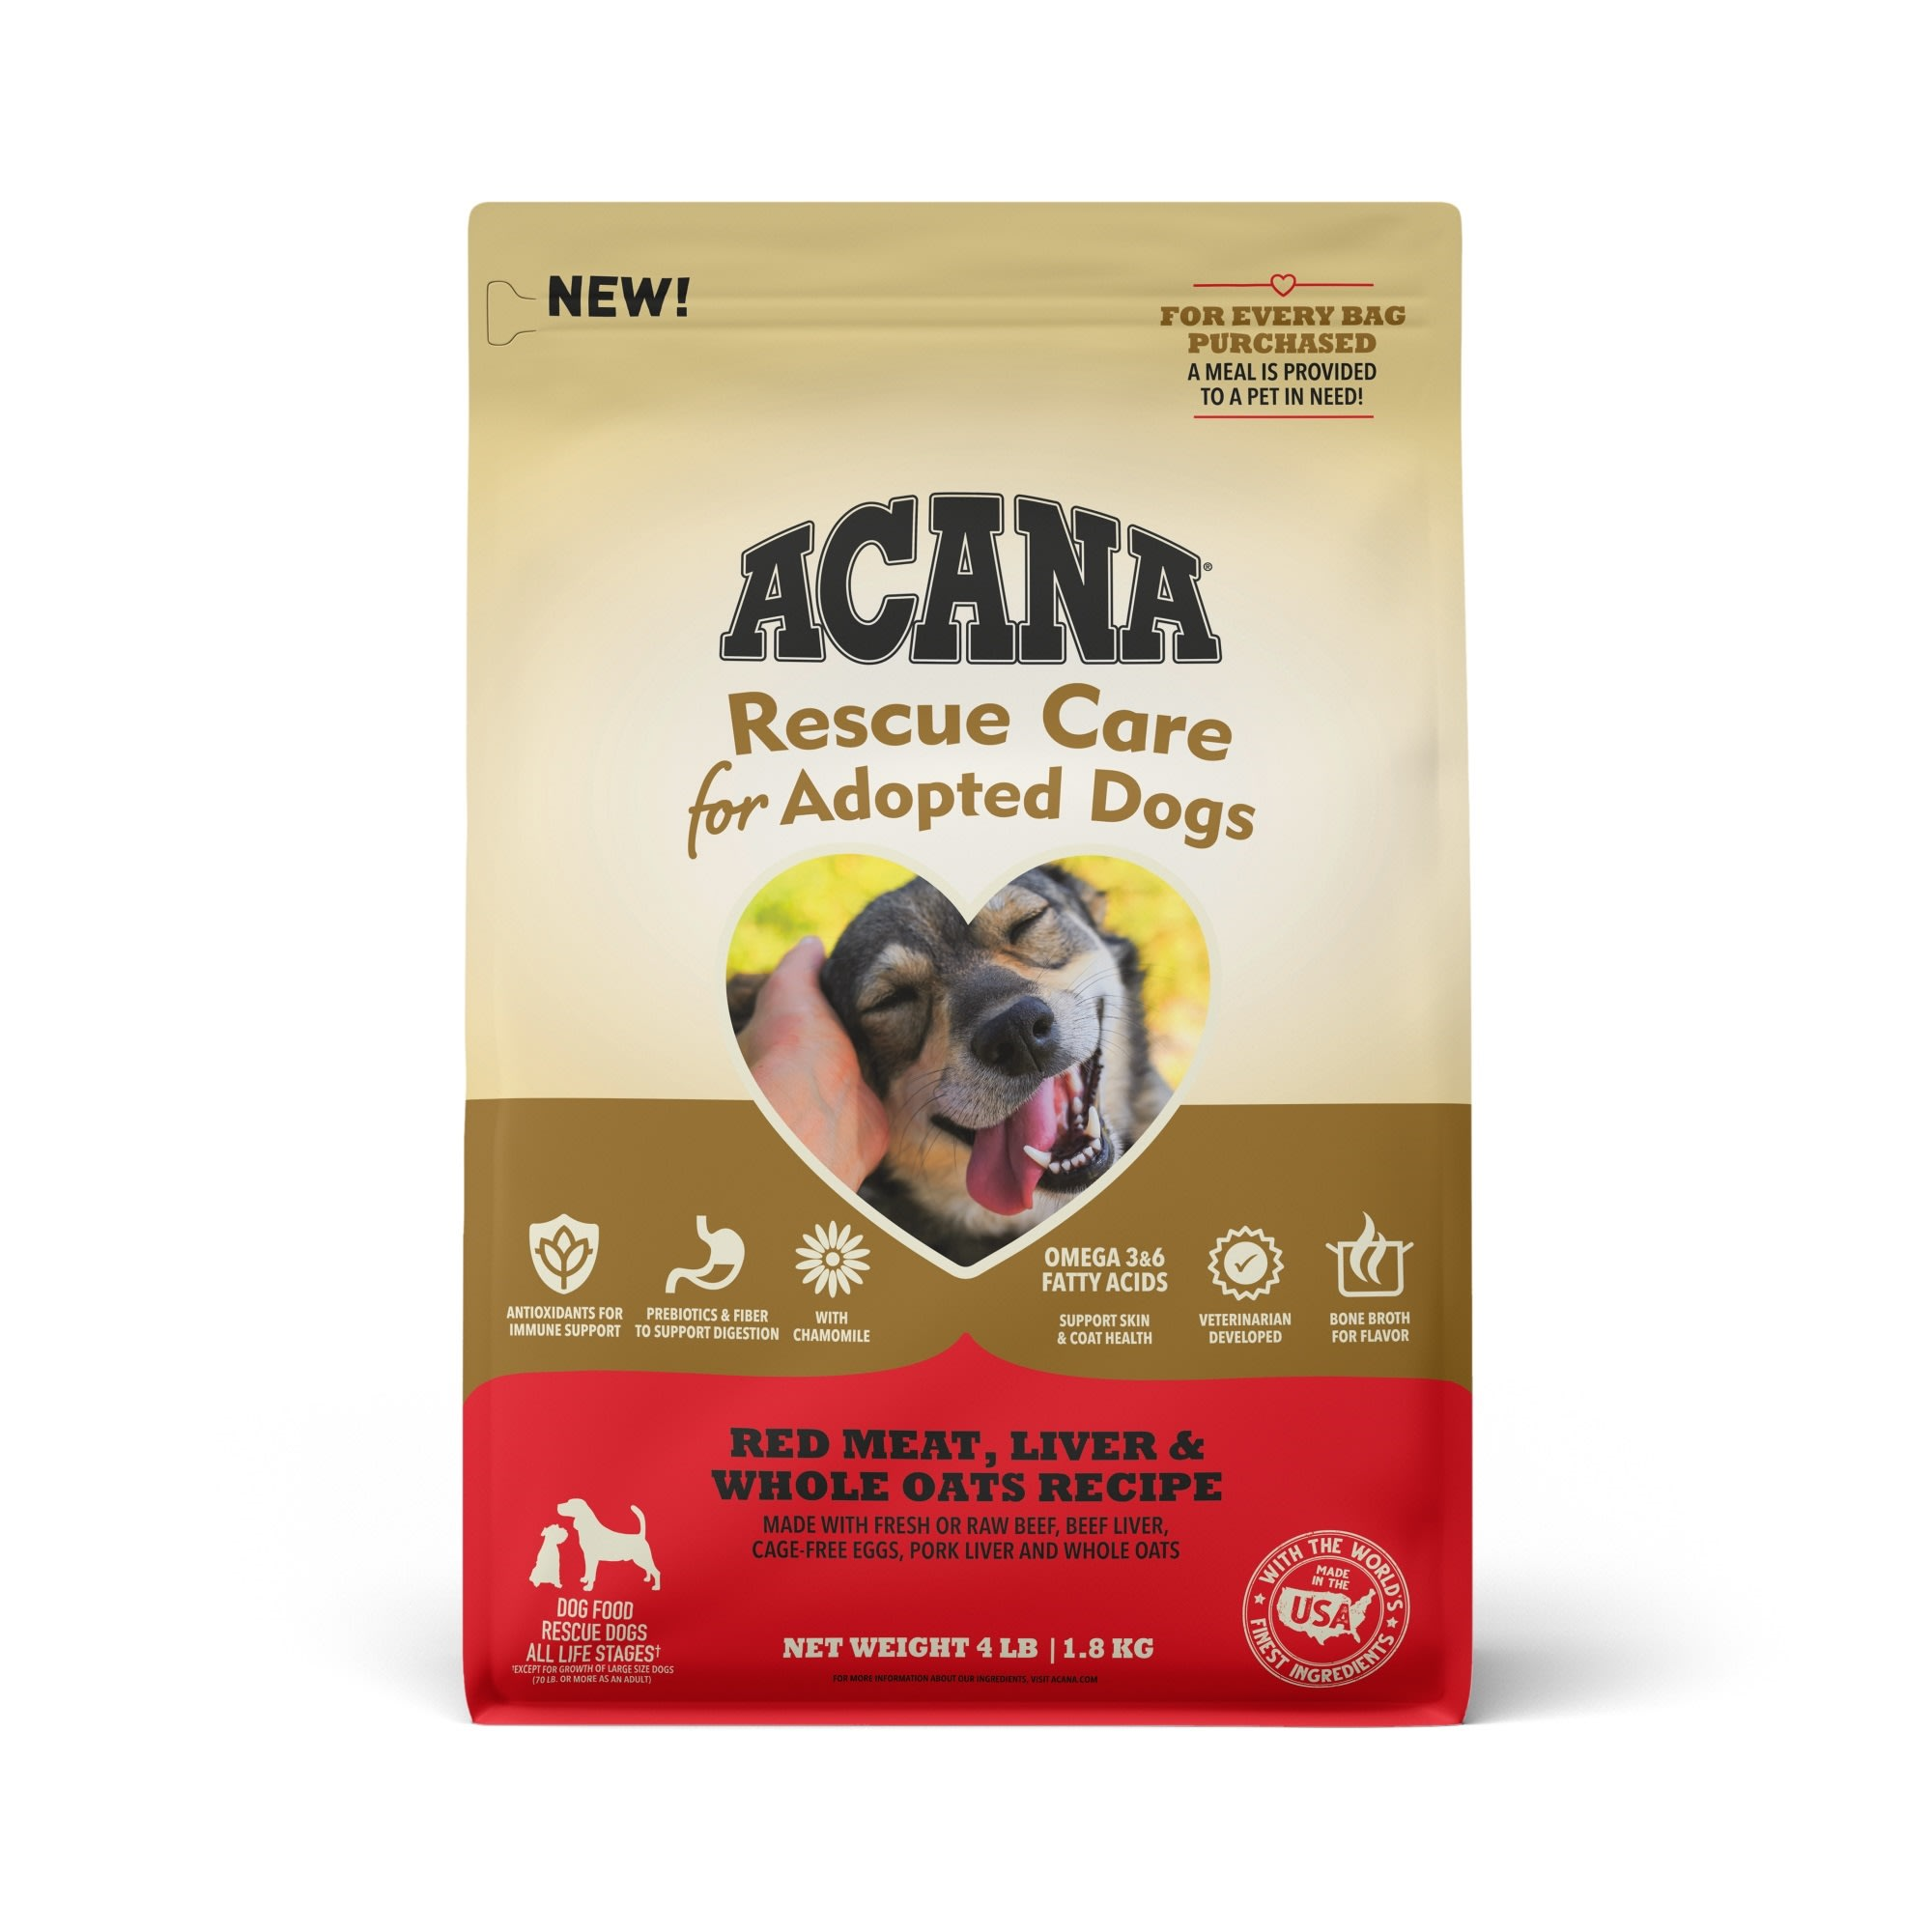 ACANA Rescue Care For Adopted Dogs Red Meat, Liver & Whole Oats Recipe Premium Dry Food, 4 lbs.